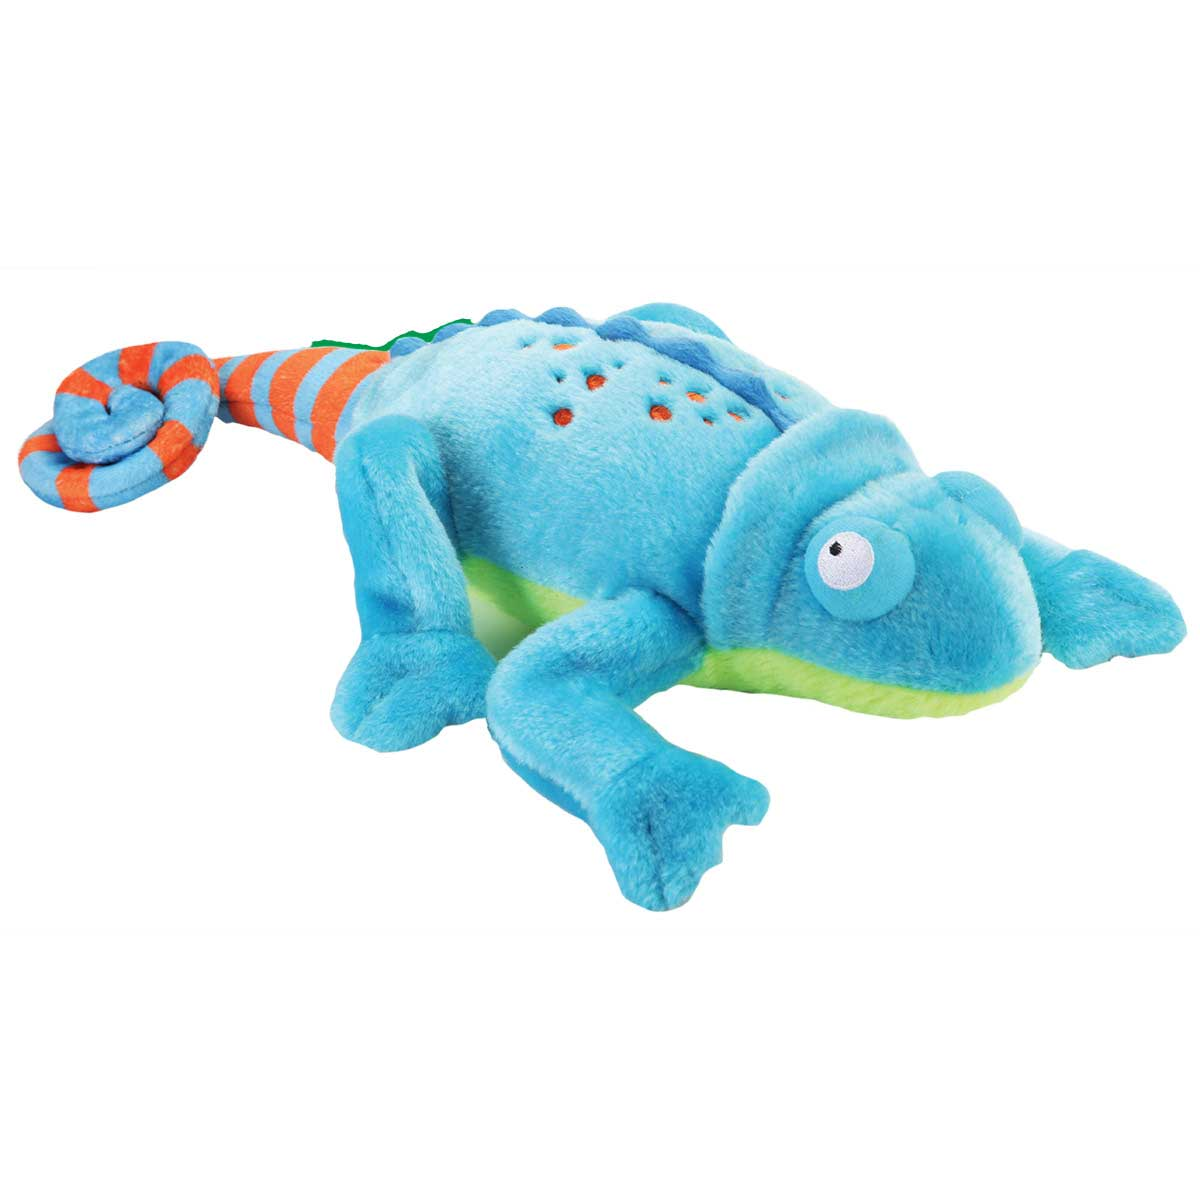 goDog Amphibianz Chameleon Dog Toy with Chew Gaurd 6 inch